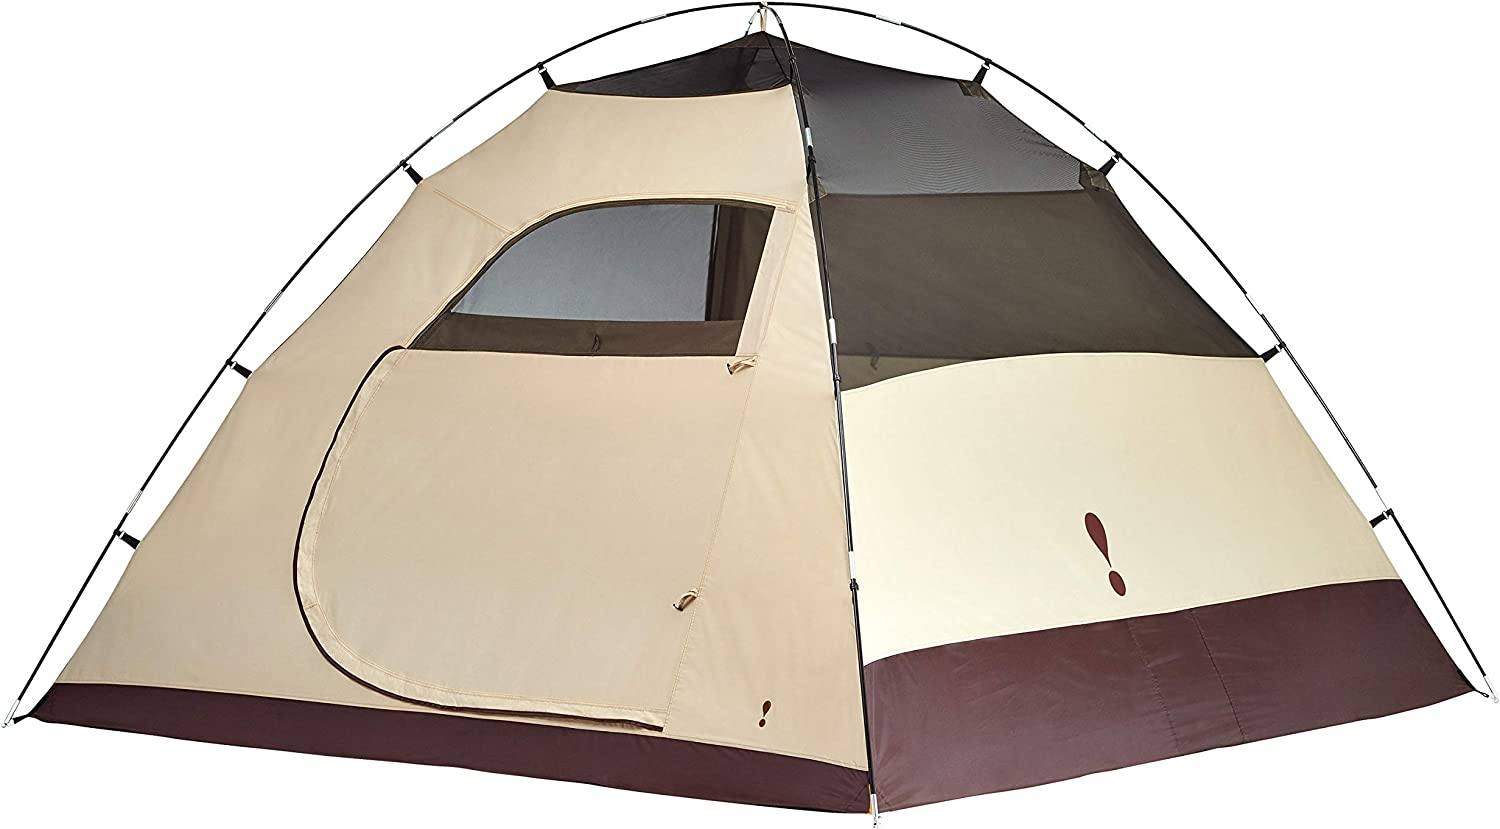 Eureka Tetragon 4 Person Tent Review